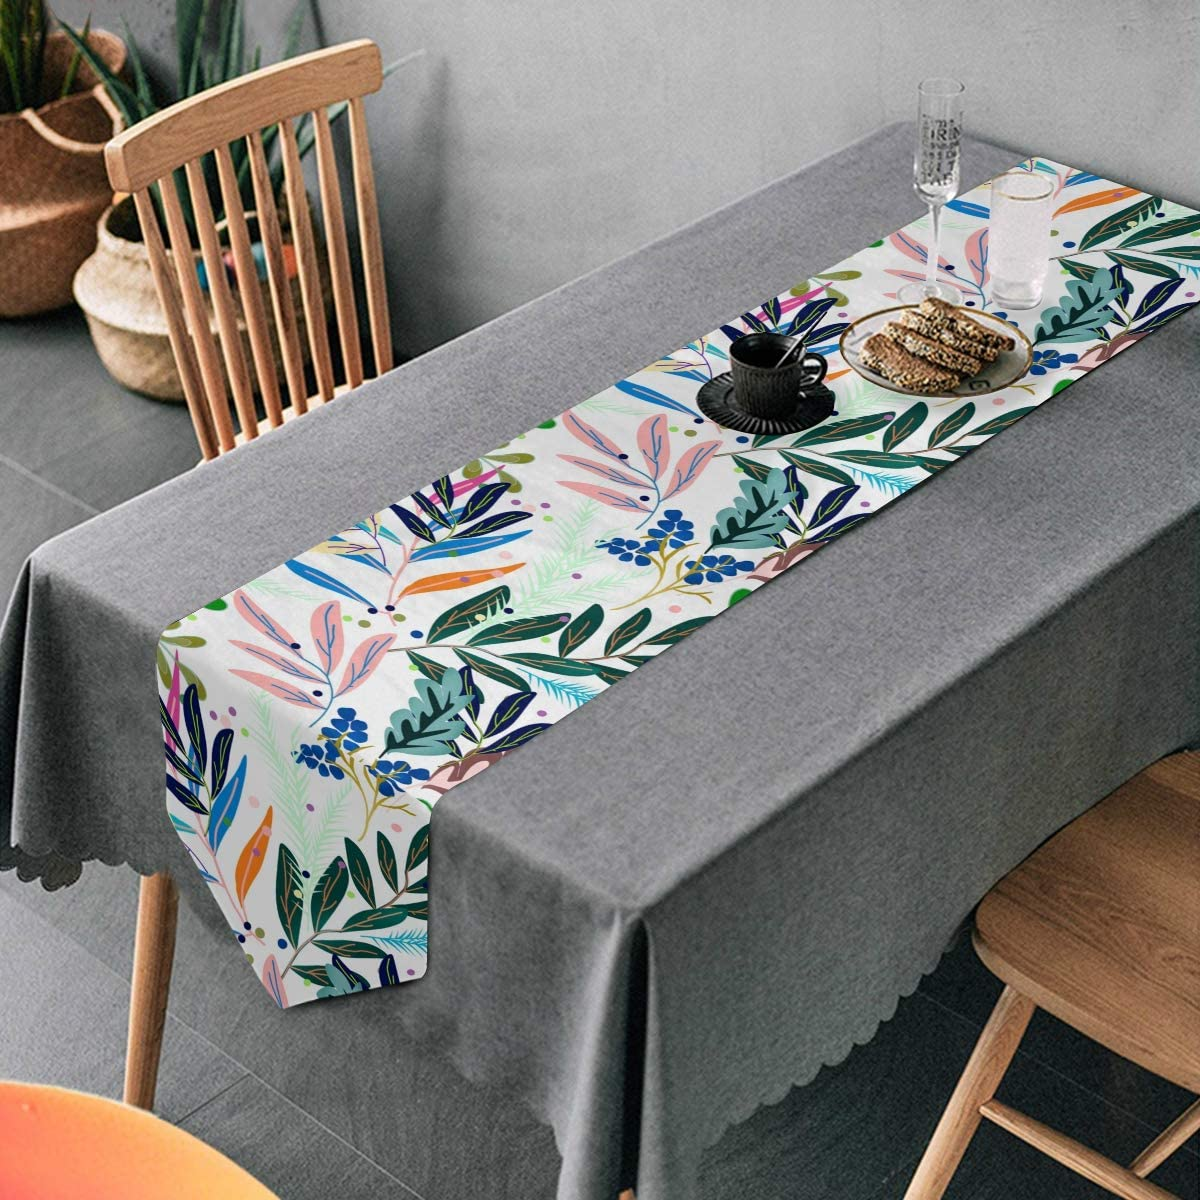 Aflyko Spring Leaves Table Runner Dining Table Decor 13